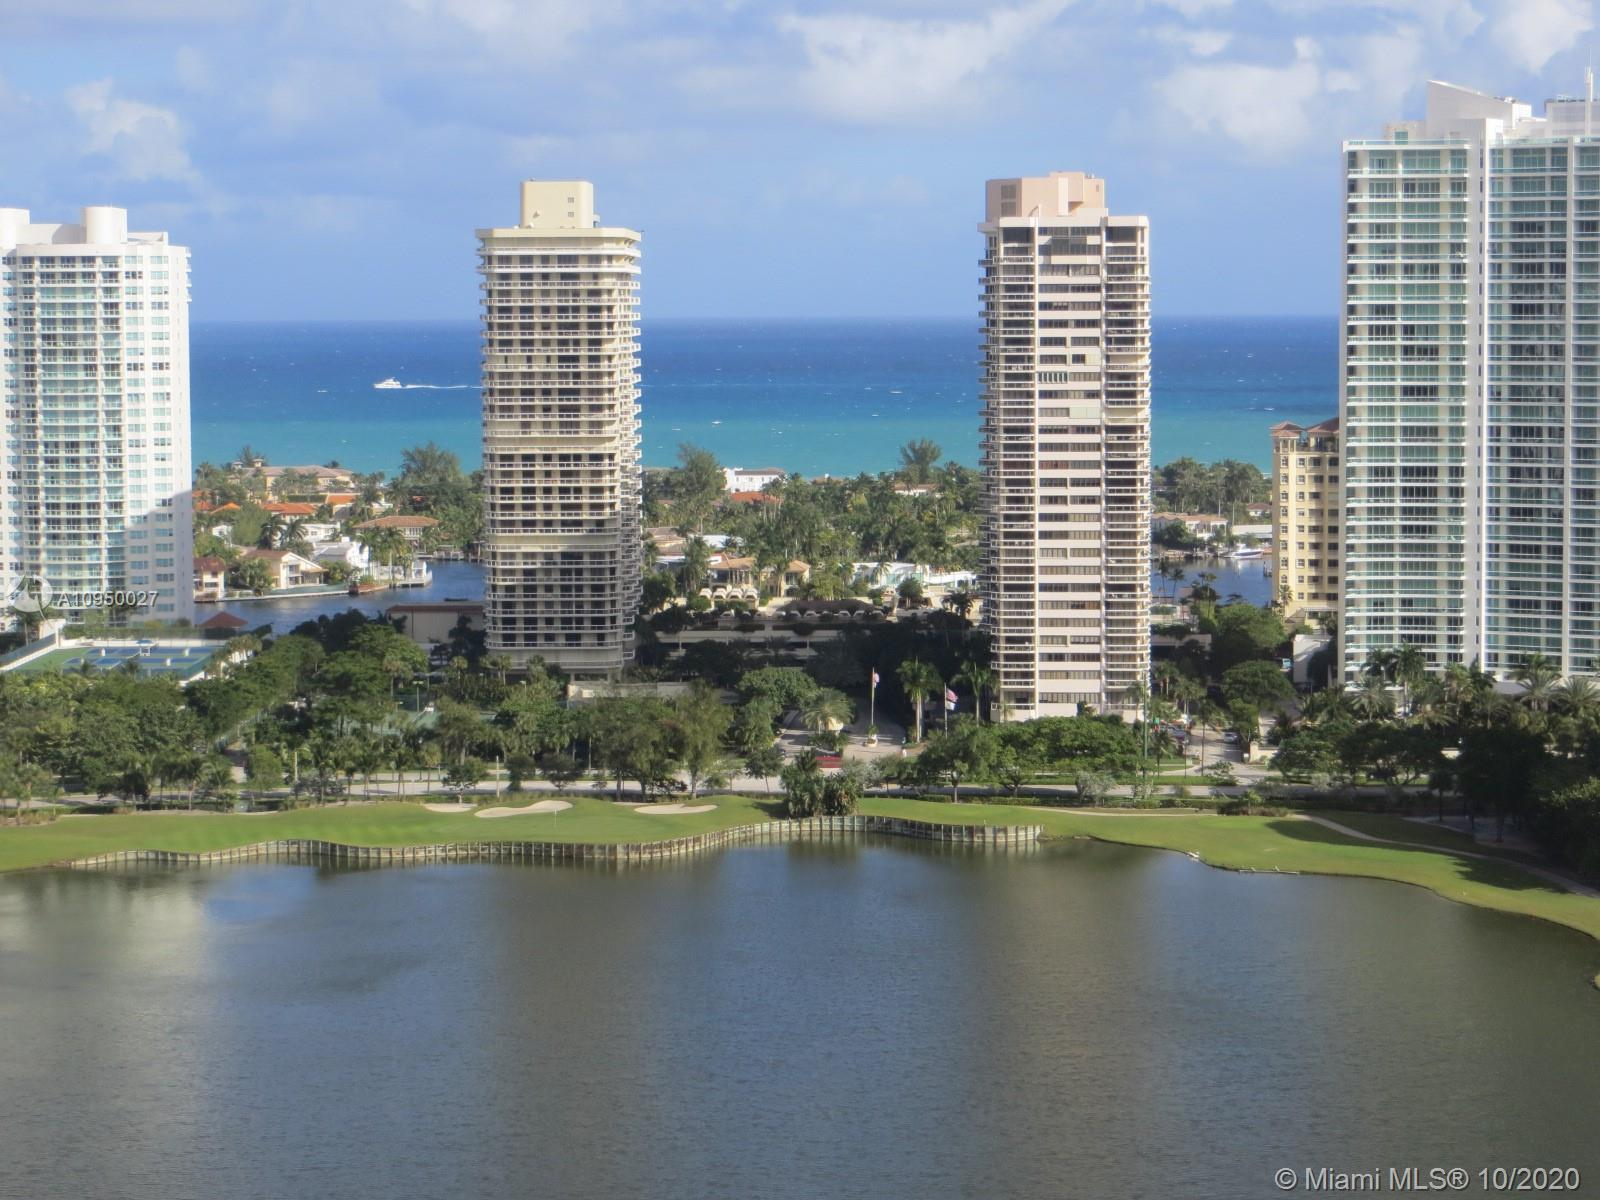 6000+ SF - Six Bedroom Aventura 27th FL Penthouse with Sweeping Ocean, Turnberry Golf and Intercoast